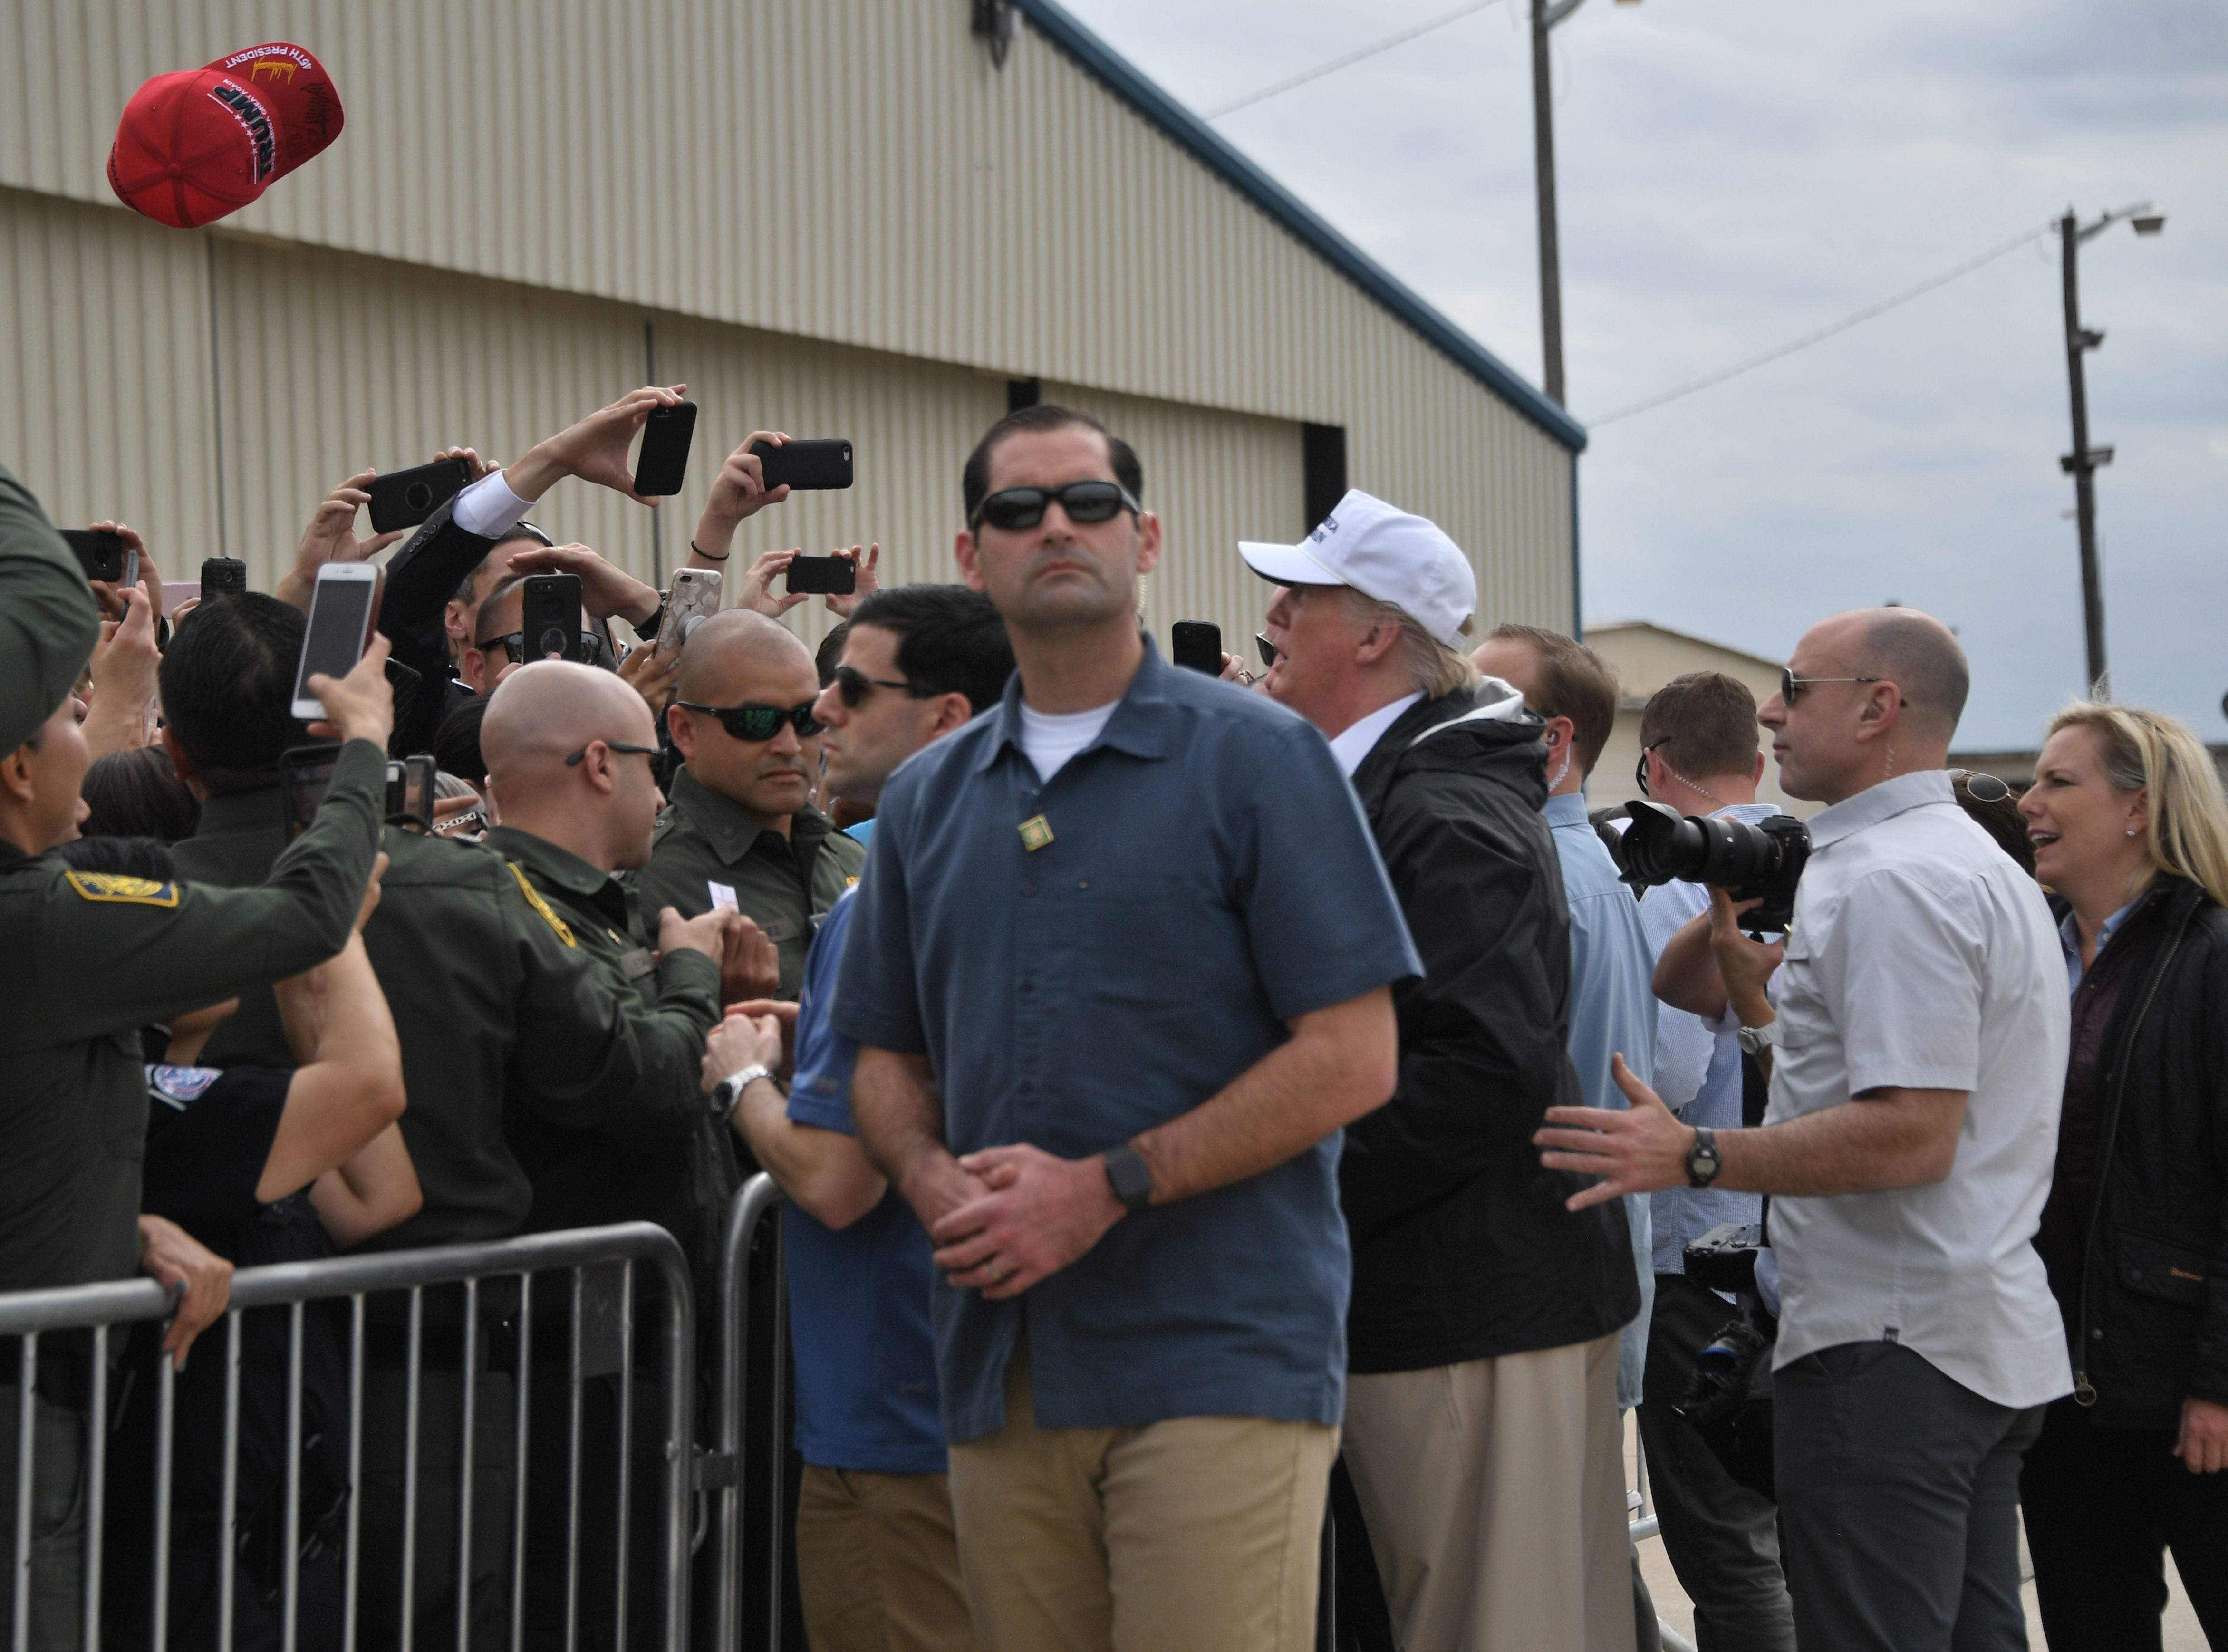 President Donald Trump visits US Border Patrol McAllen Station in McAllen, Texas, on Jan. 10, 2019, with Homeland Security Secretary Kirstjen Nielsen, right. Trump travels to the US-Mexico border as part of his all-out offensive to build a wall, a day after he stormed out of negotiations when Democratic opponents refused to agree to fund the project in exchange for an end to a painful government shutdown.